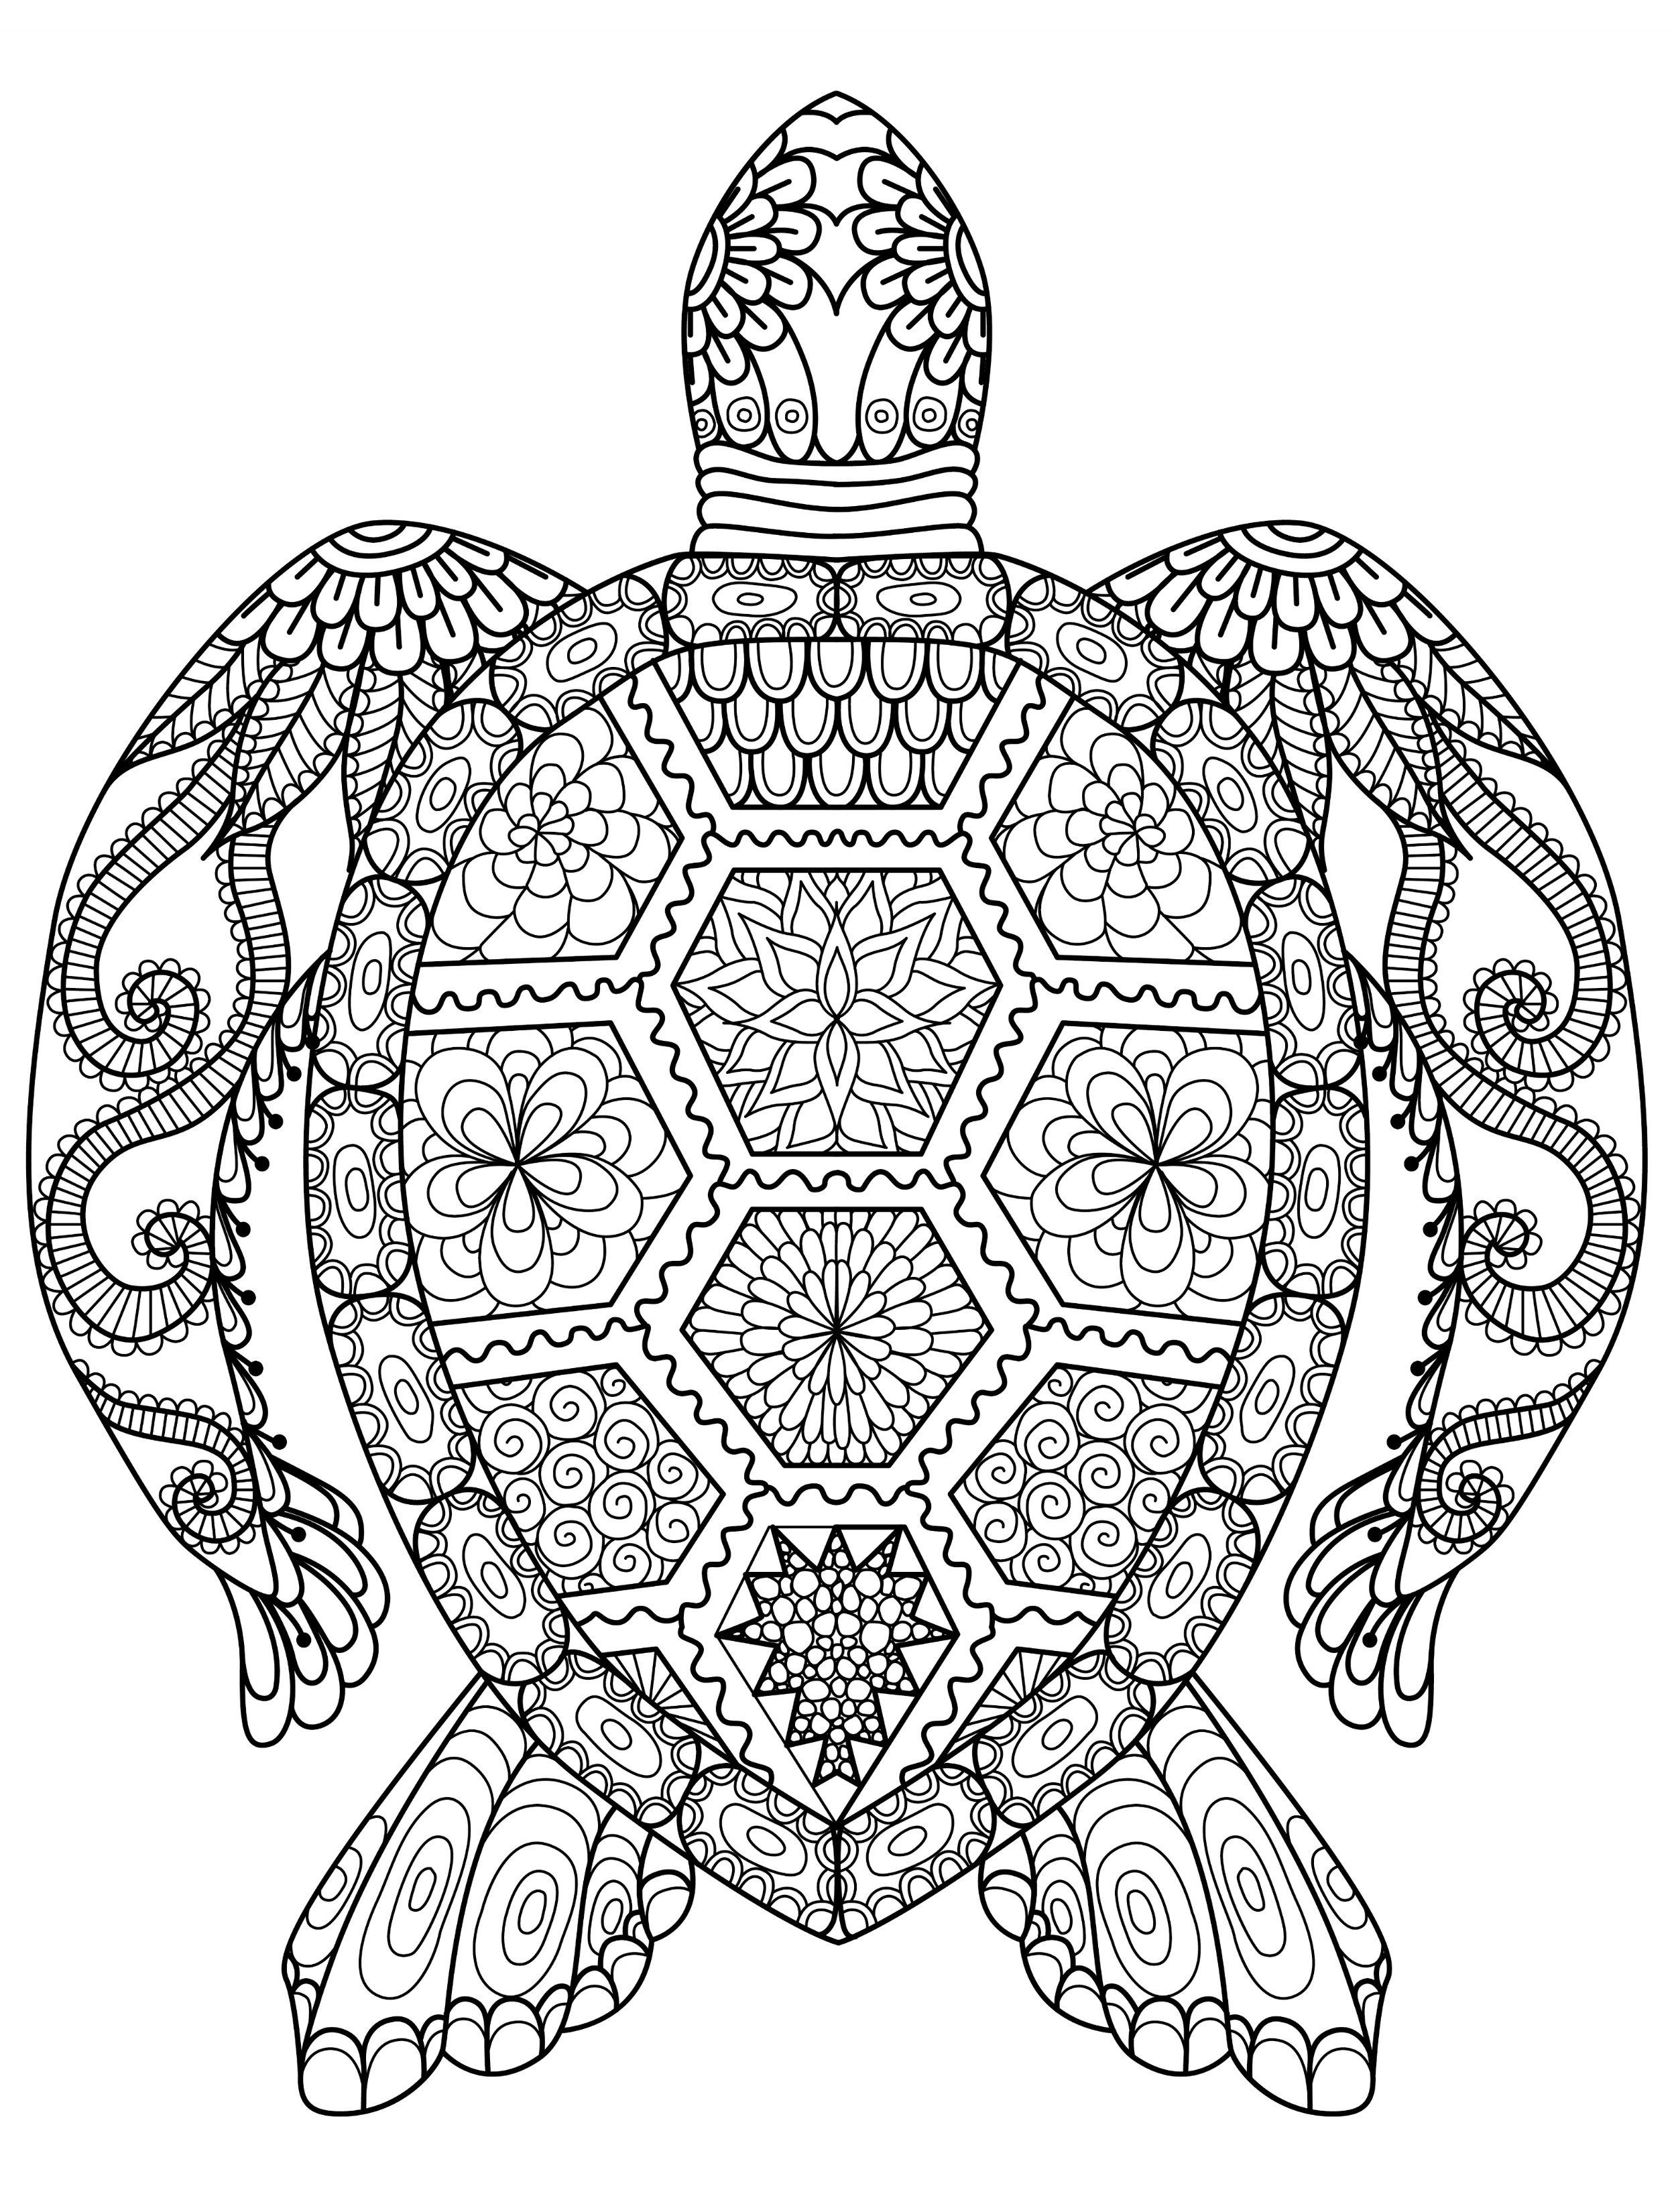 20 Gorgeous Free Printable Adult Coloring Pages … | Adult Coloring - Free Printable Nature Coloring Pages For Adults